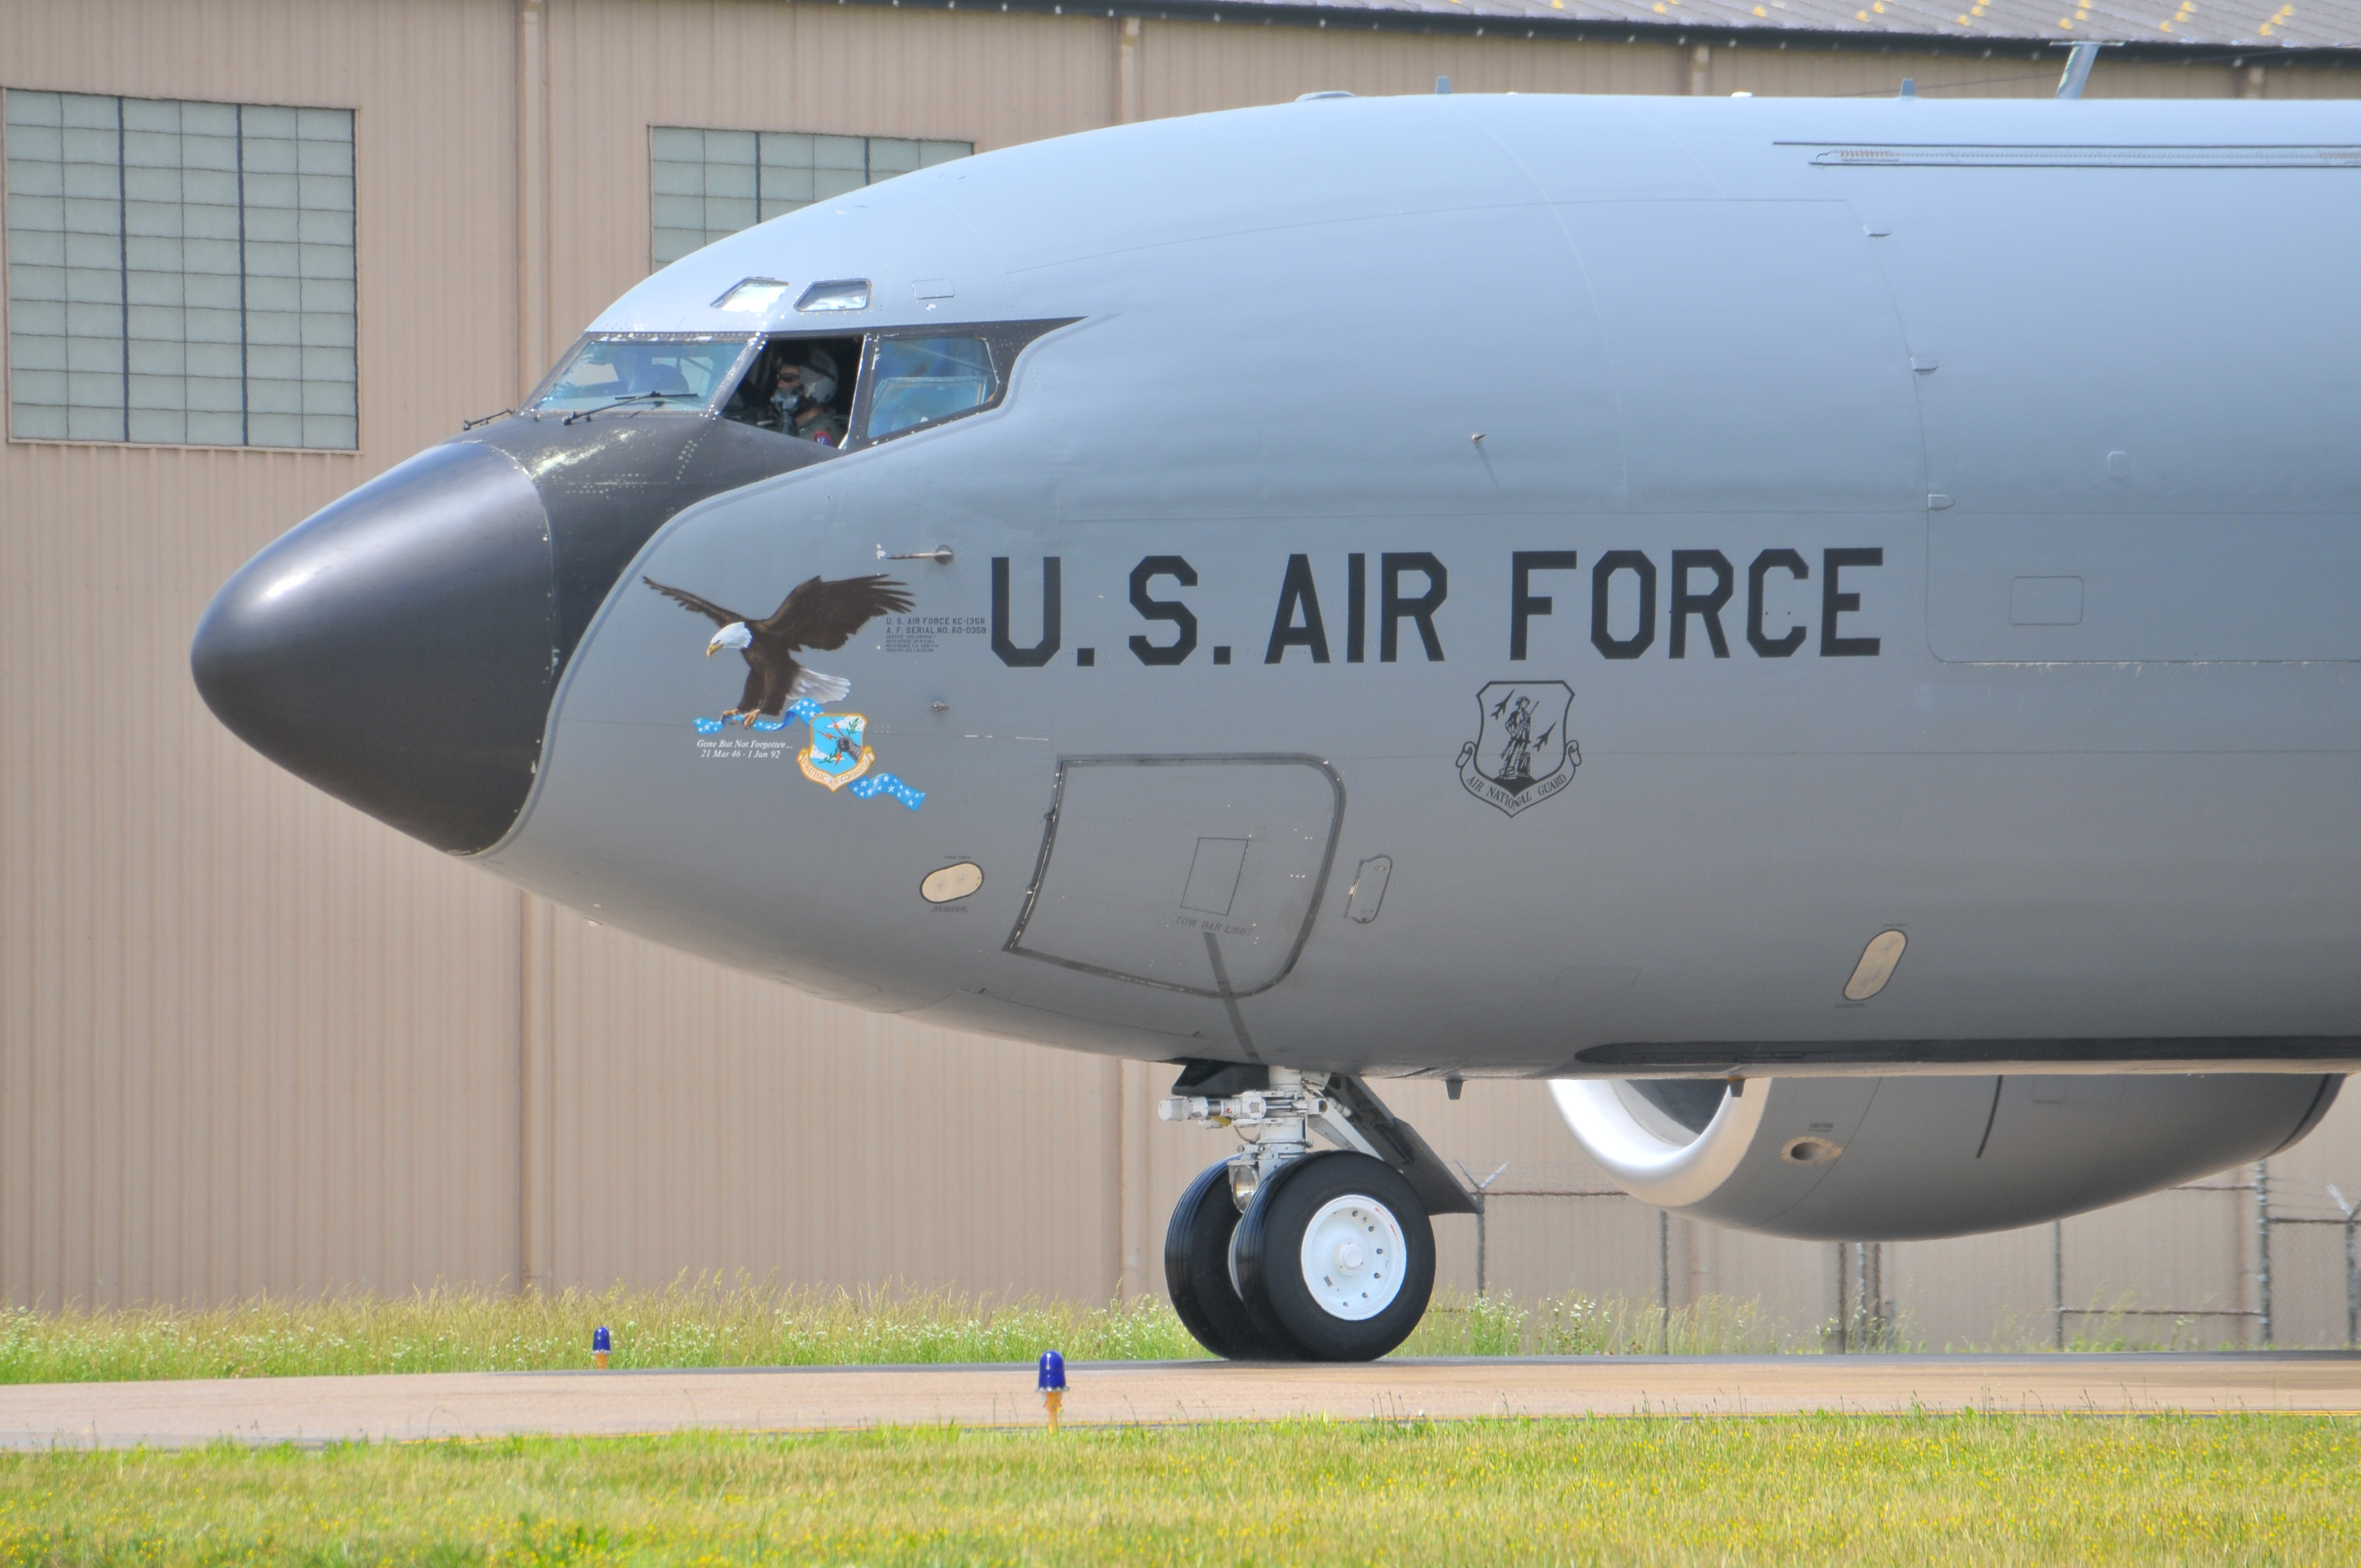 scott air force base dating Kc-135 tankers get a boost from innovative, fuel-saving engines  scott air force base,  some dating back to 1984.